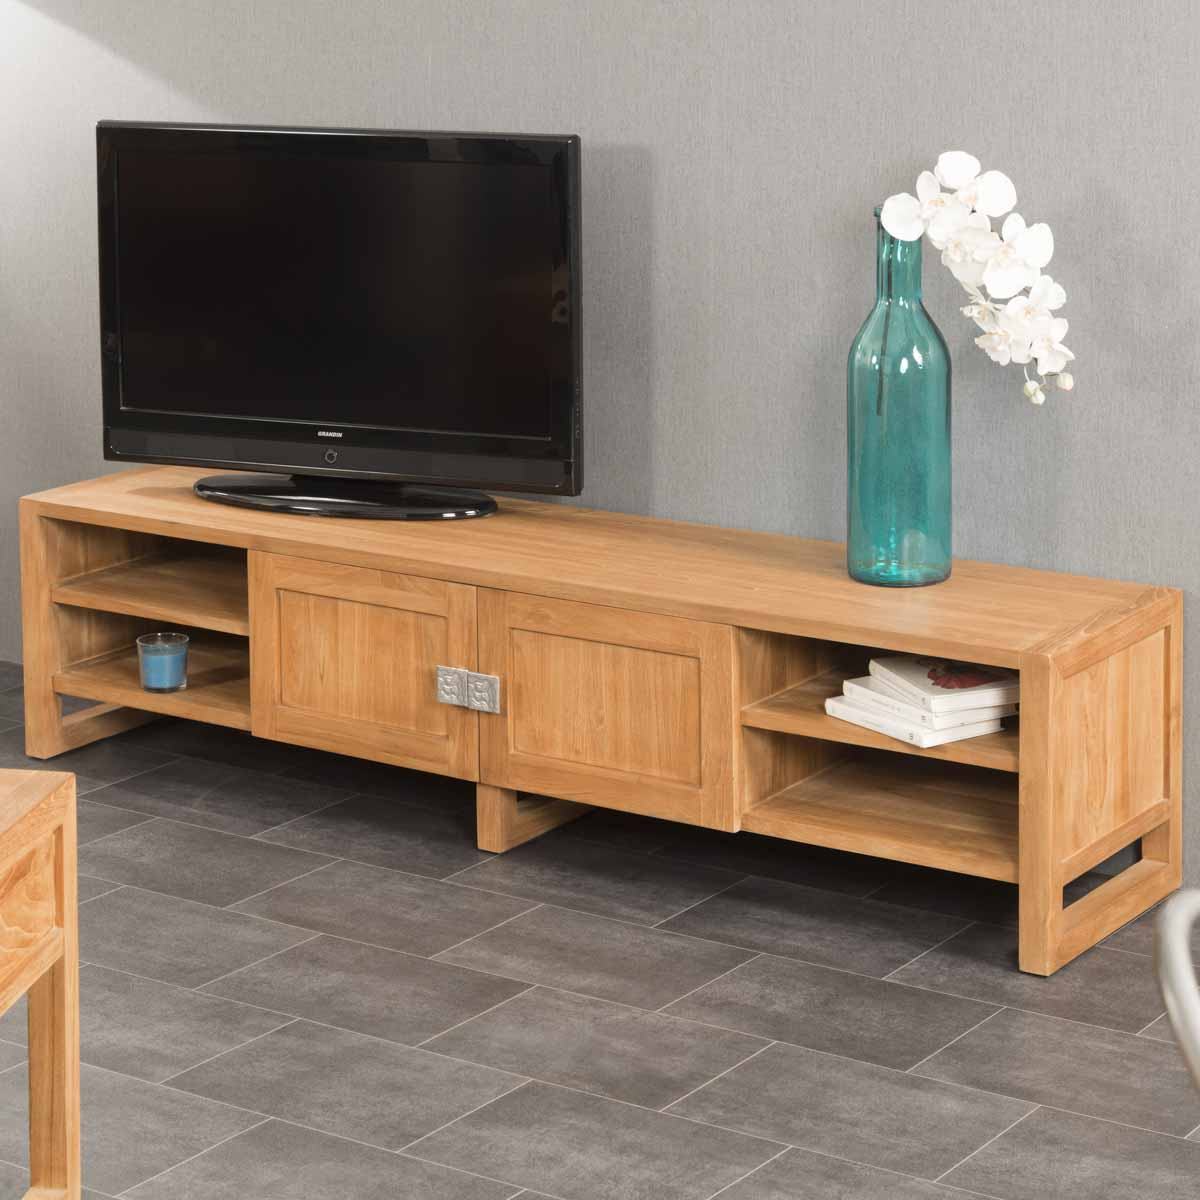 meuble tv teck meuble tv bois naturel rectangle th a. Black Bedroom Furniture Sets. Home Design Ideas